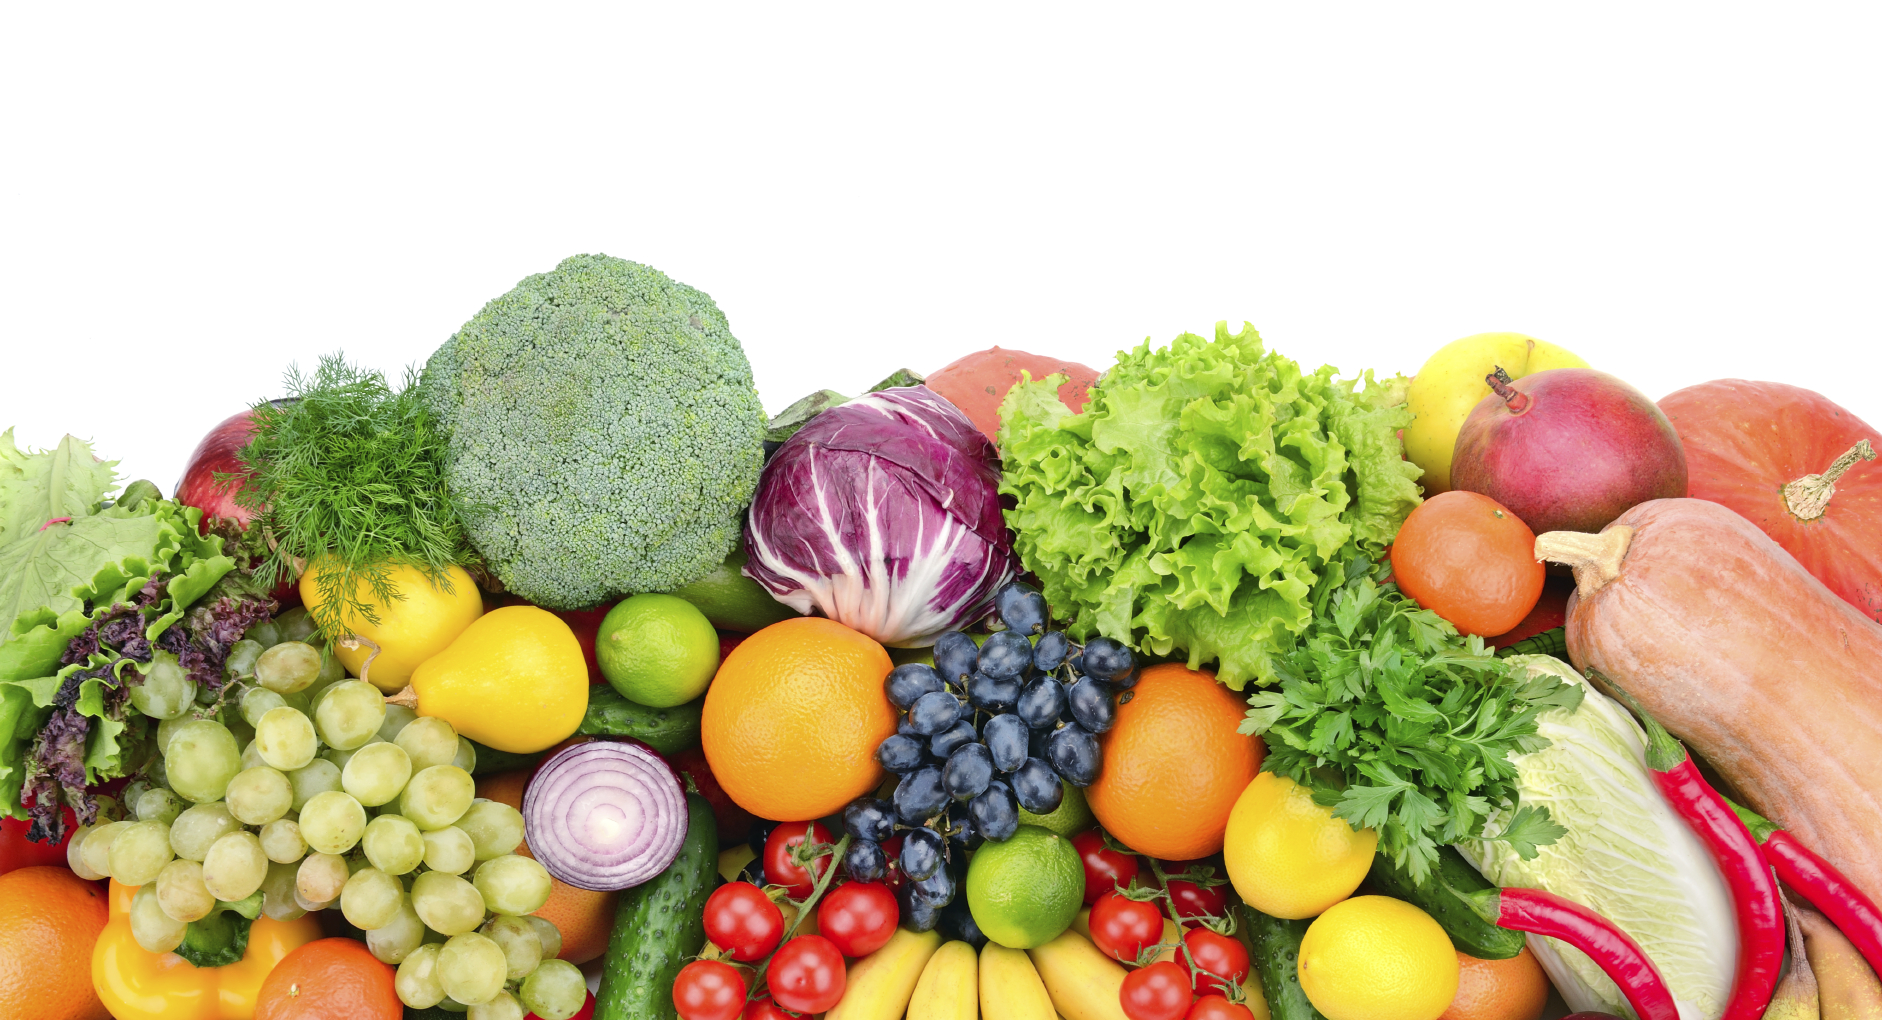 For a longer life researchers say eat this many fruits and veggies per day  CBS News